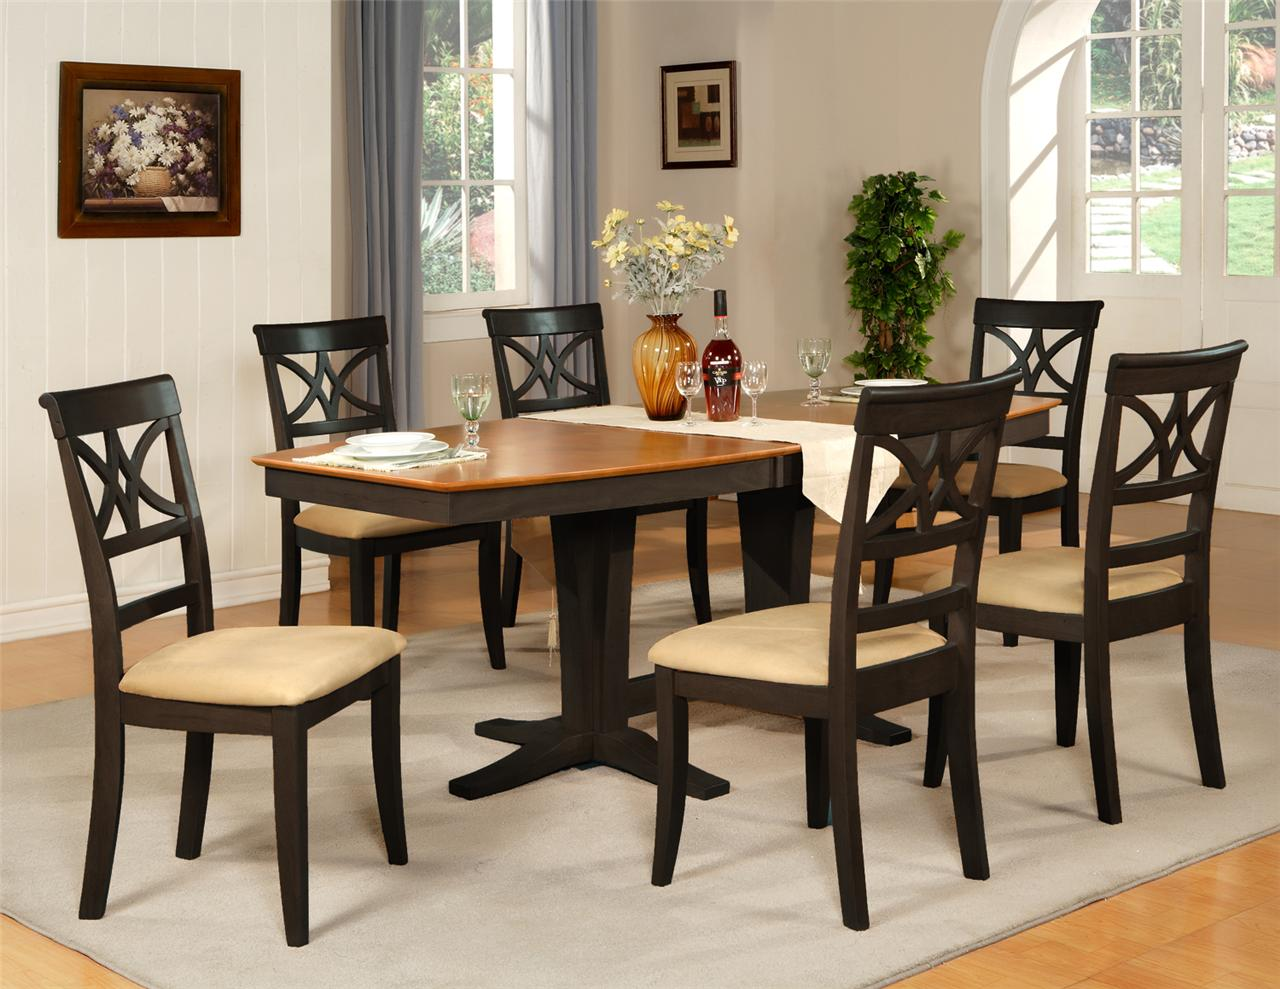 Stunning Dining Room Table and Chair Sets 1280 x 989 · 152 kB · jpeg